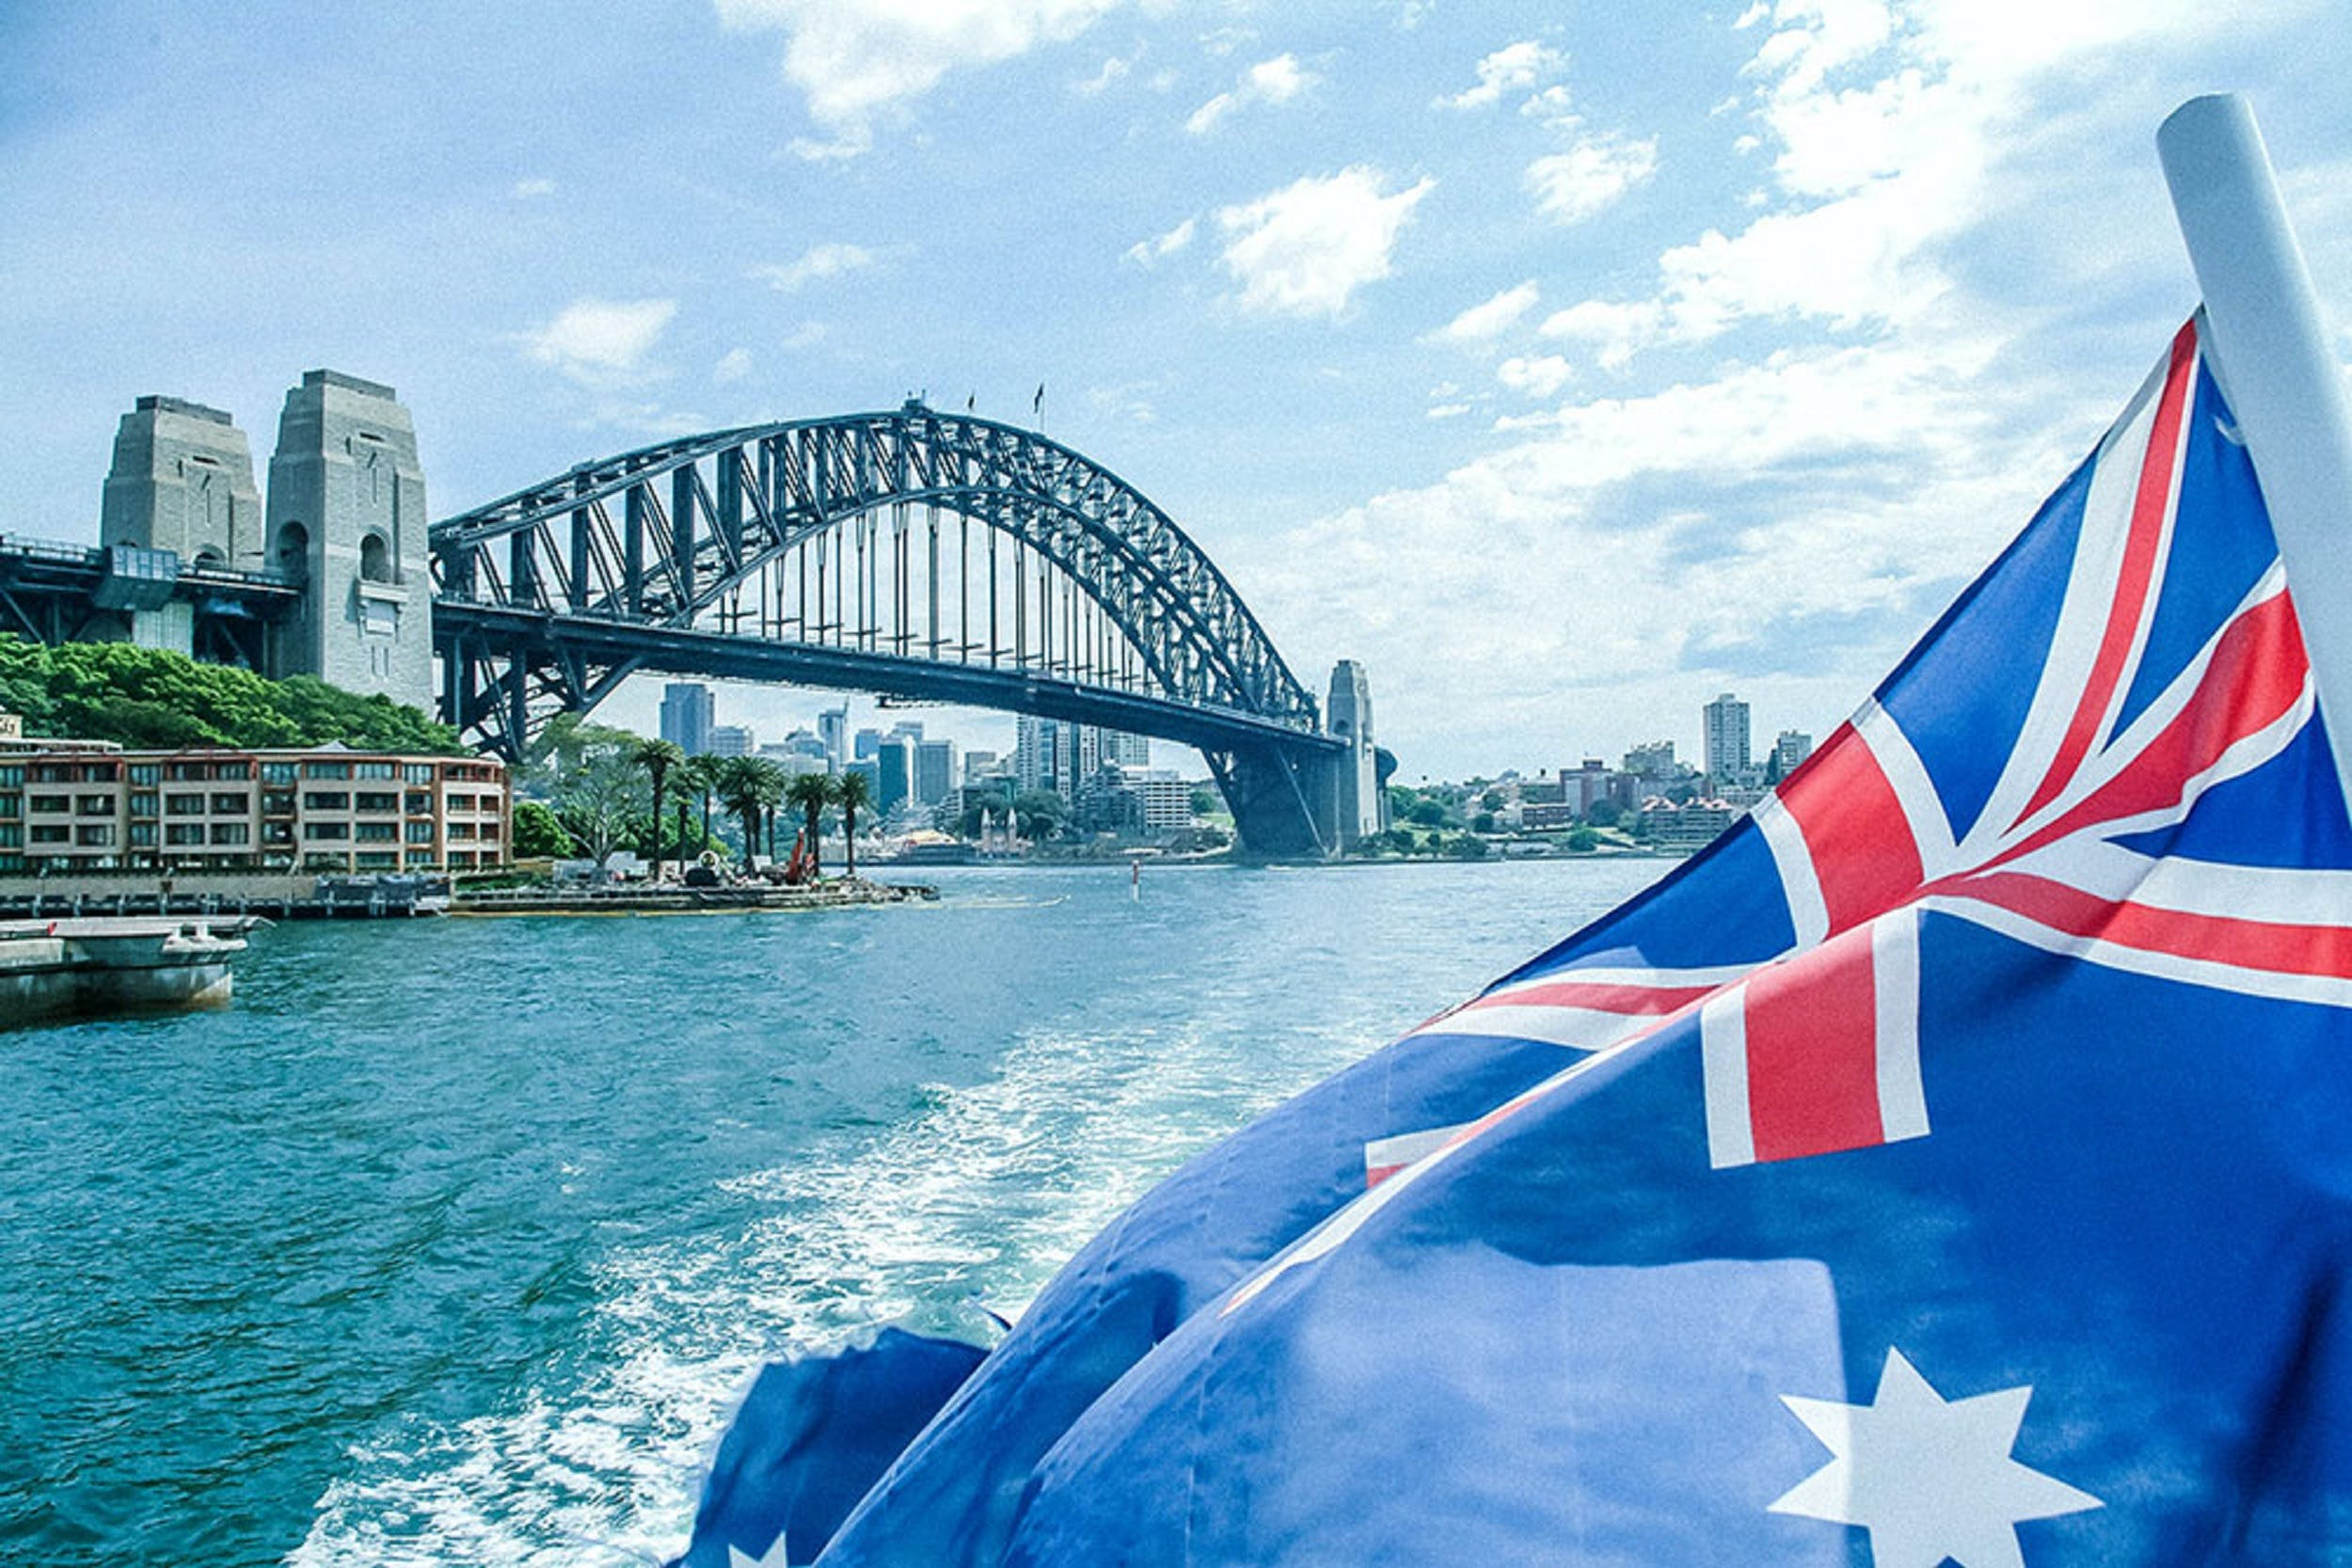 Australia Day Lunch and Dinner Cruises On Sydney Harbour with Sydney Showboats - Accommodation Adelaide